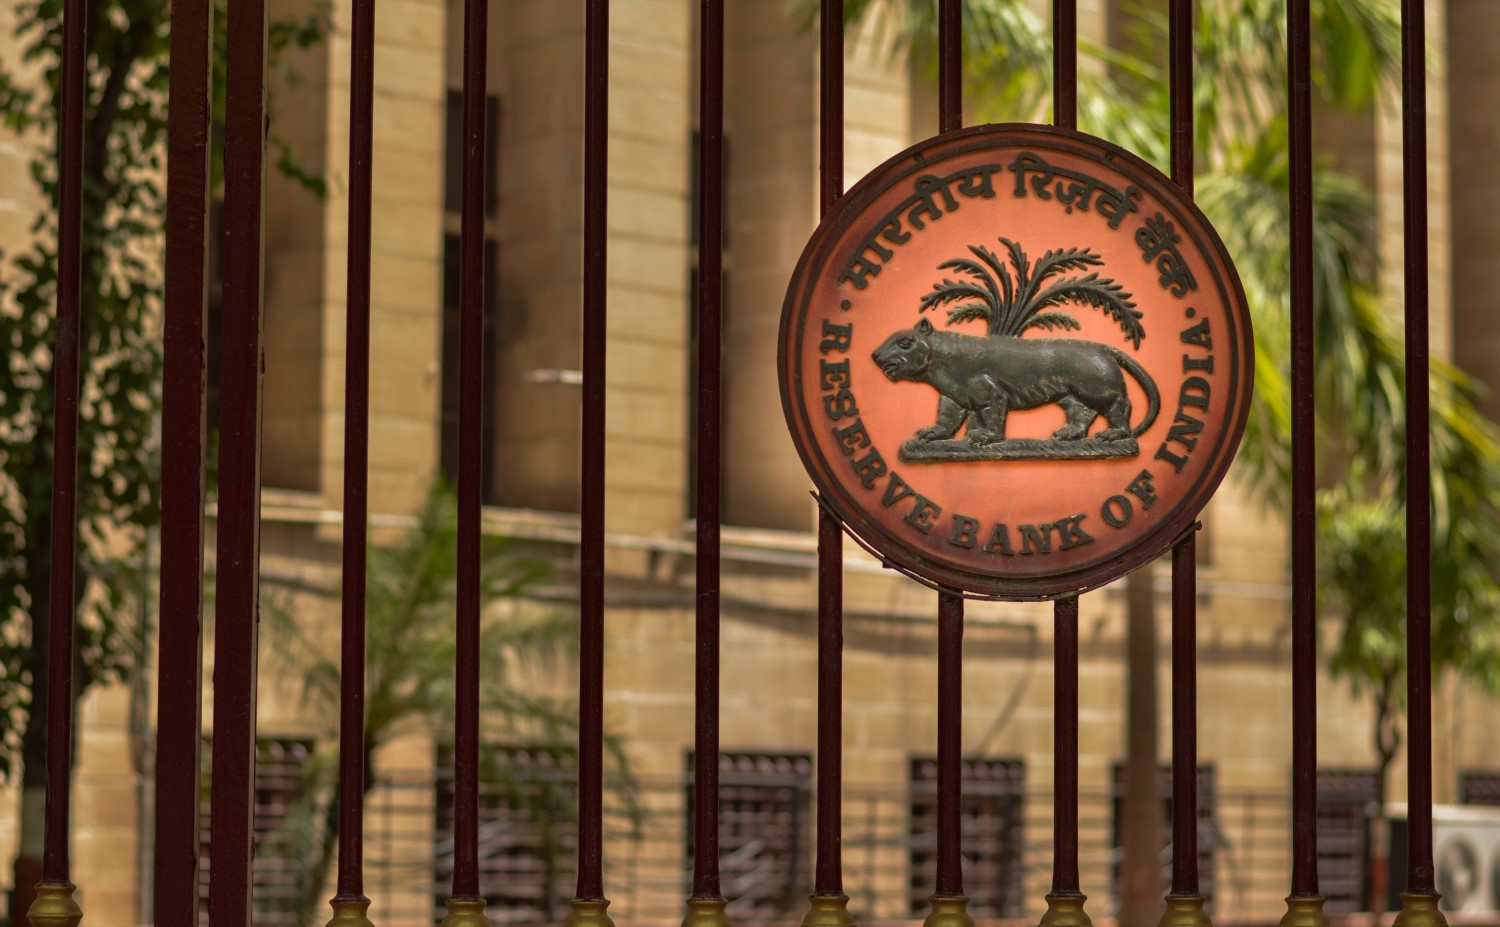 Reserve Bank of India Encourages Lenders to Cut Ties With Crypto Exchanges: Report